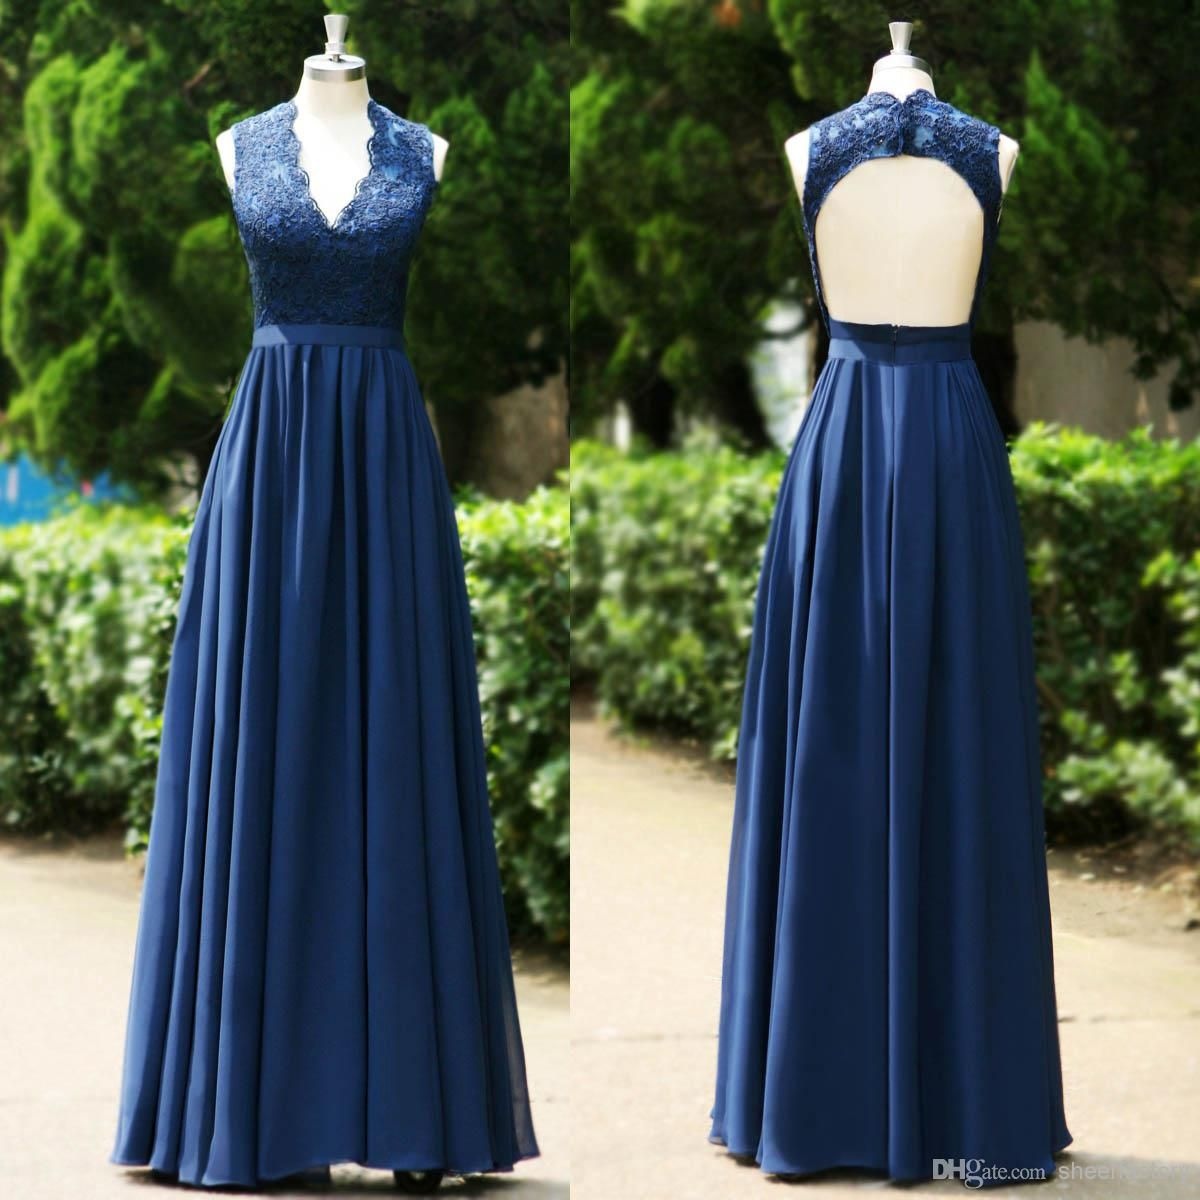 Blue Wedding Gowns 2014: 2015 Navy Blue V Neck Lace Evening Dresses A Line Backless